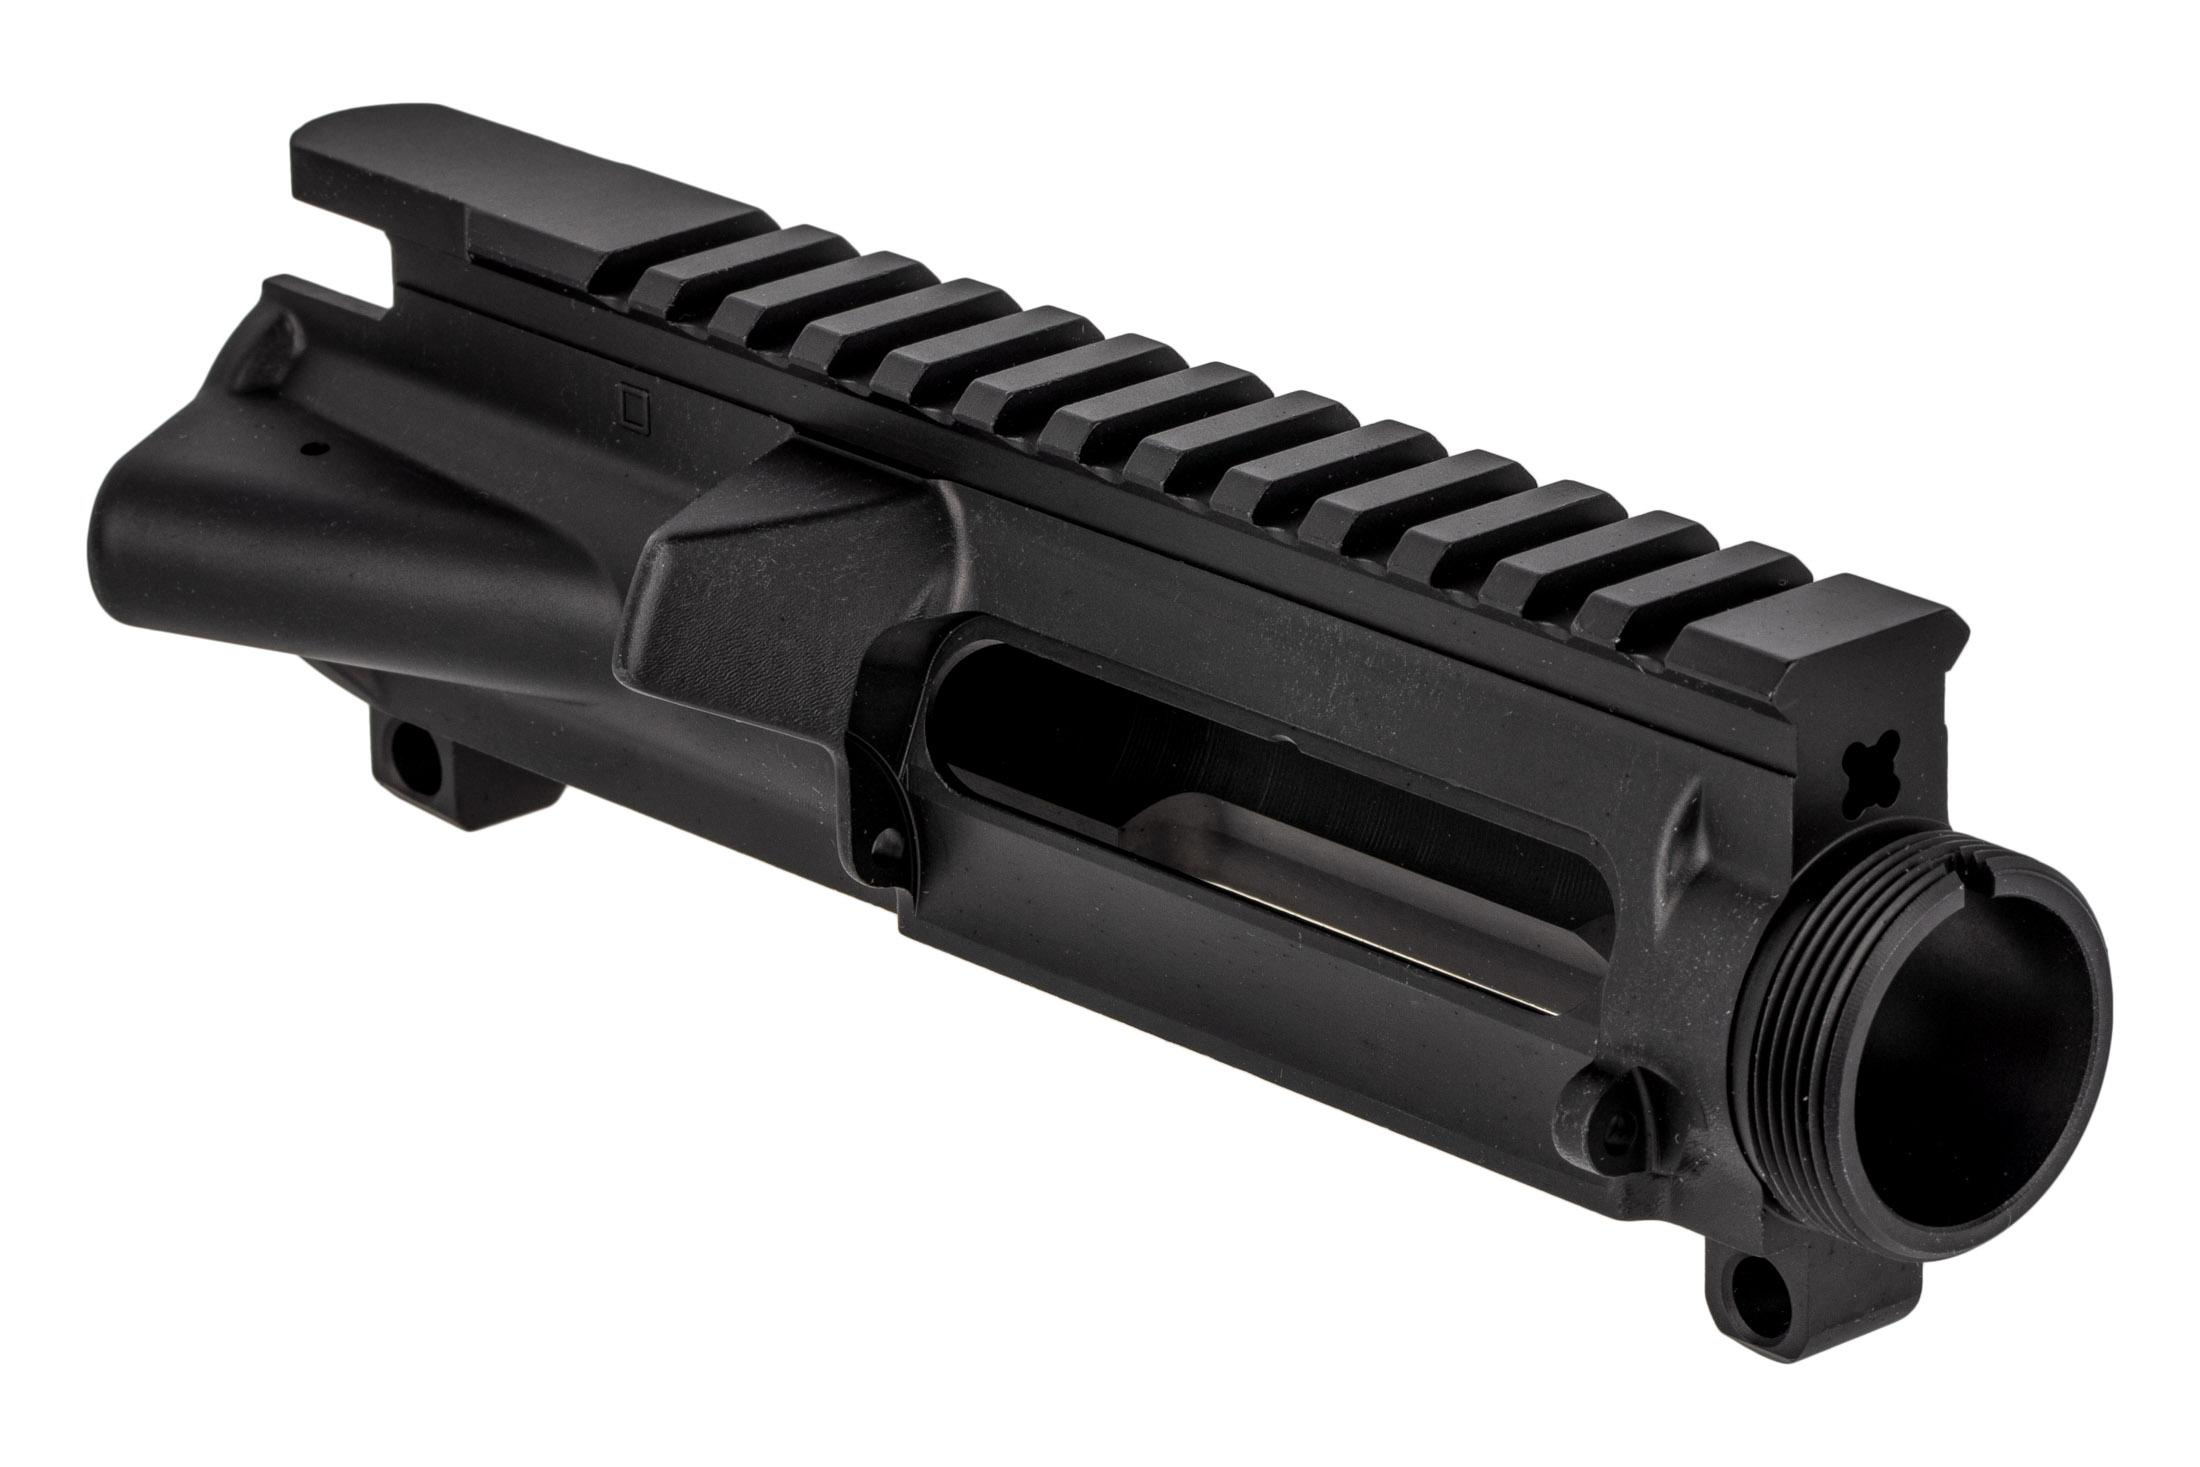 Bear Creek Arsenal stripped AR-15 upper receiver is compatible with MIL-SPEC components.